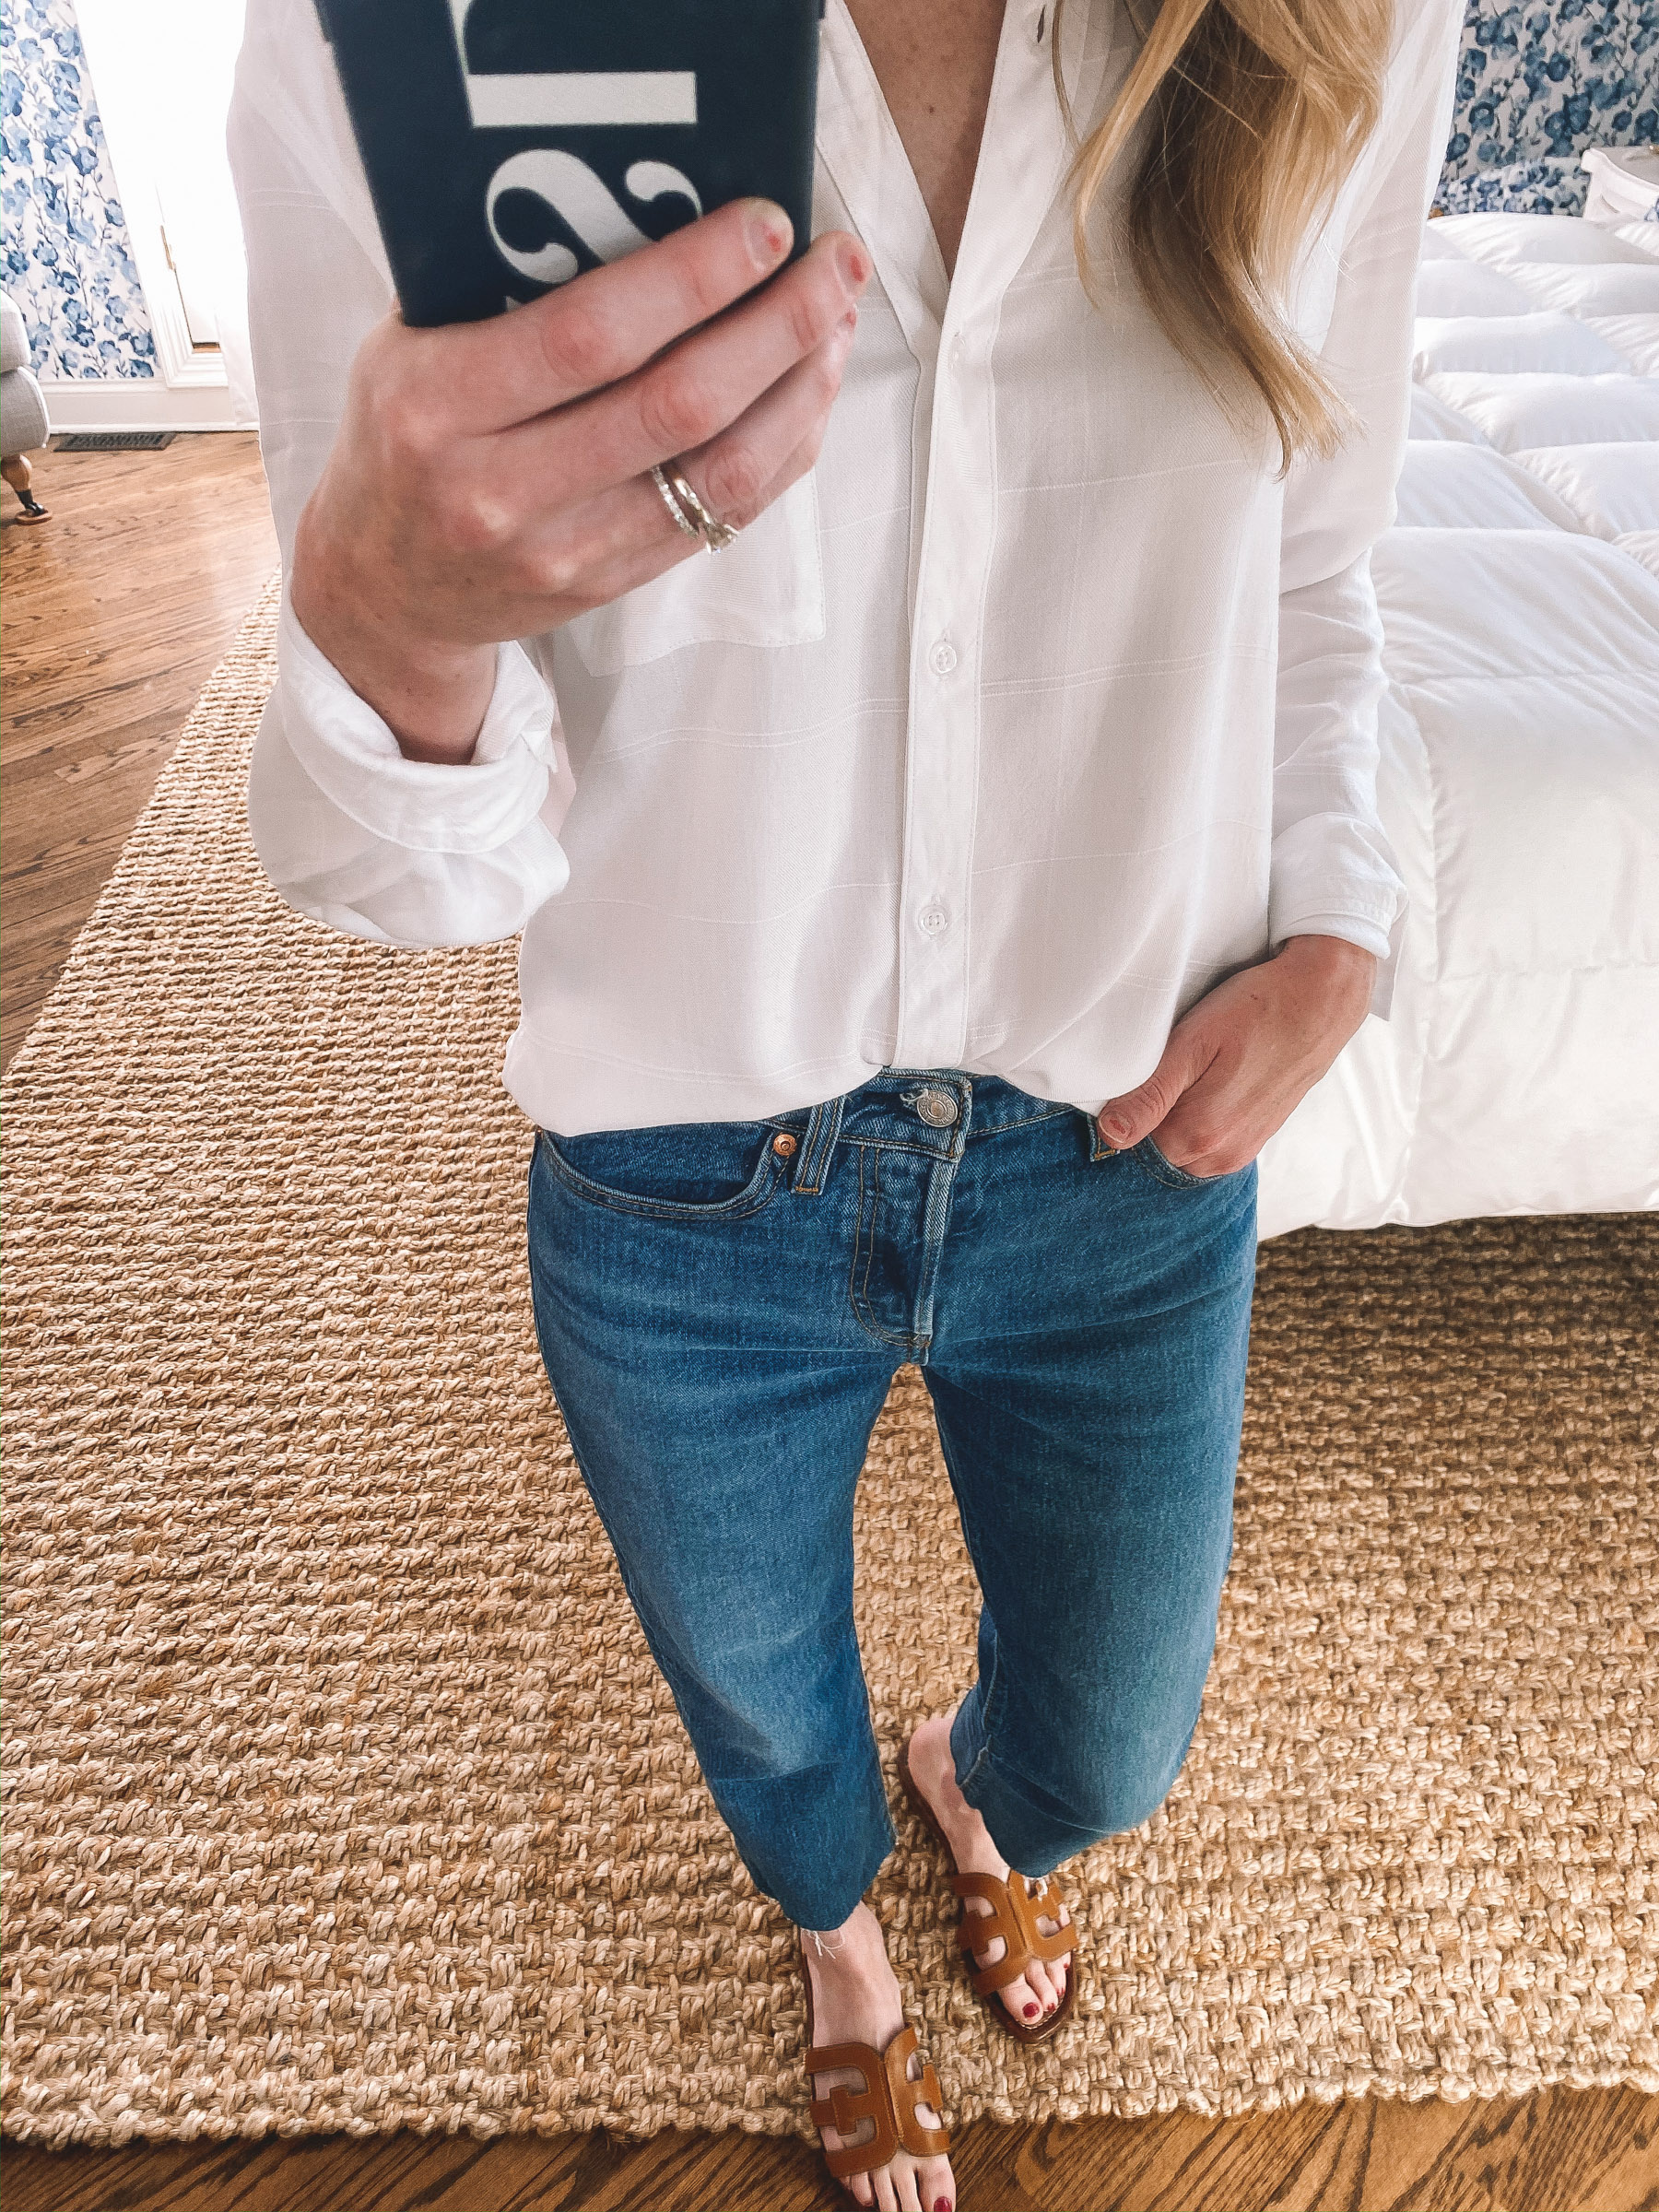 RAILS Shirt Shopbop Sale: What I Bought